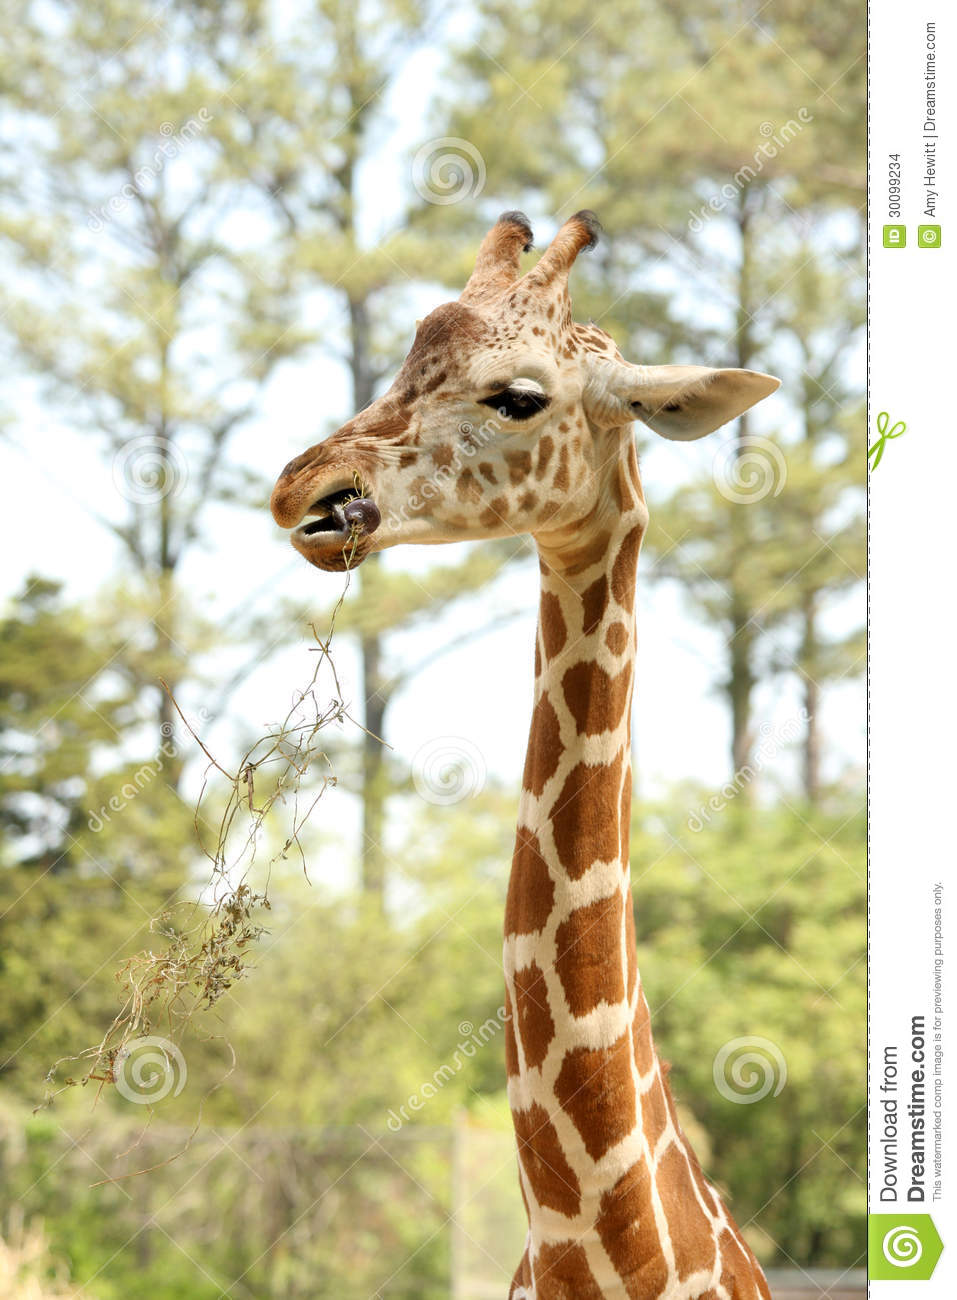 what does a baby giraffe eat